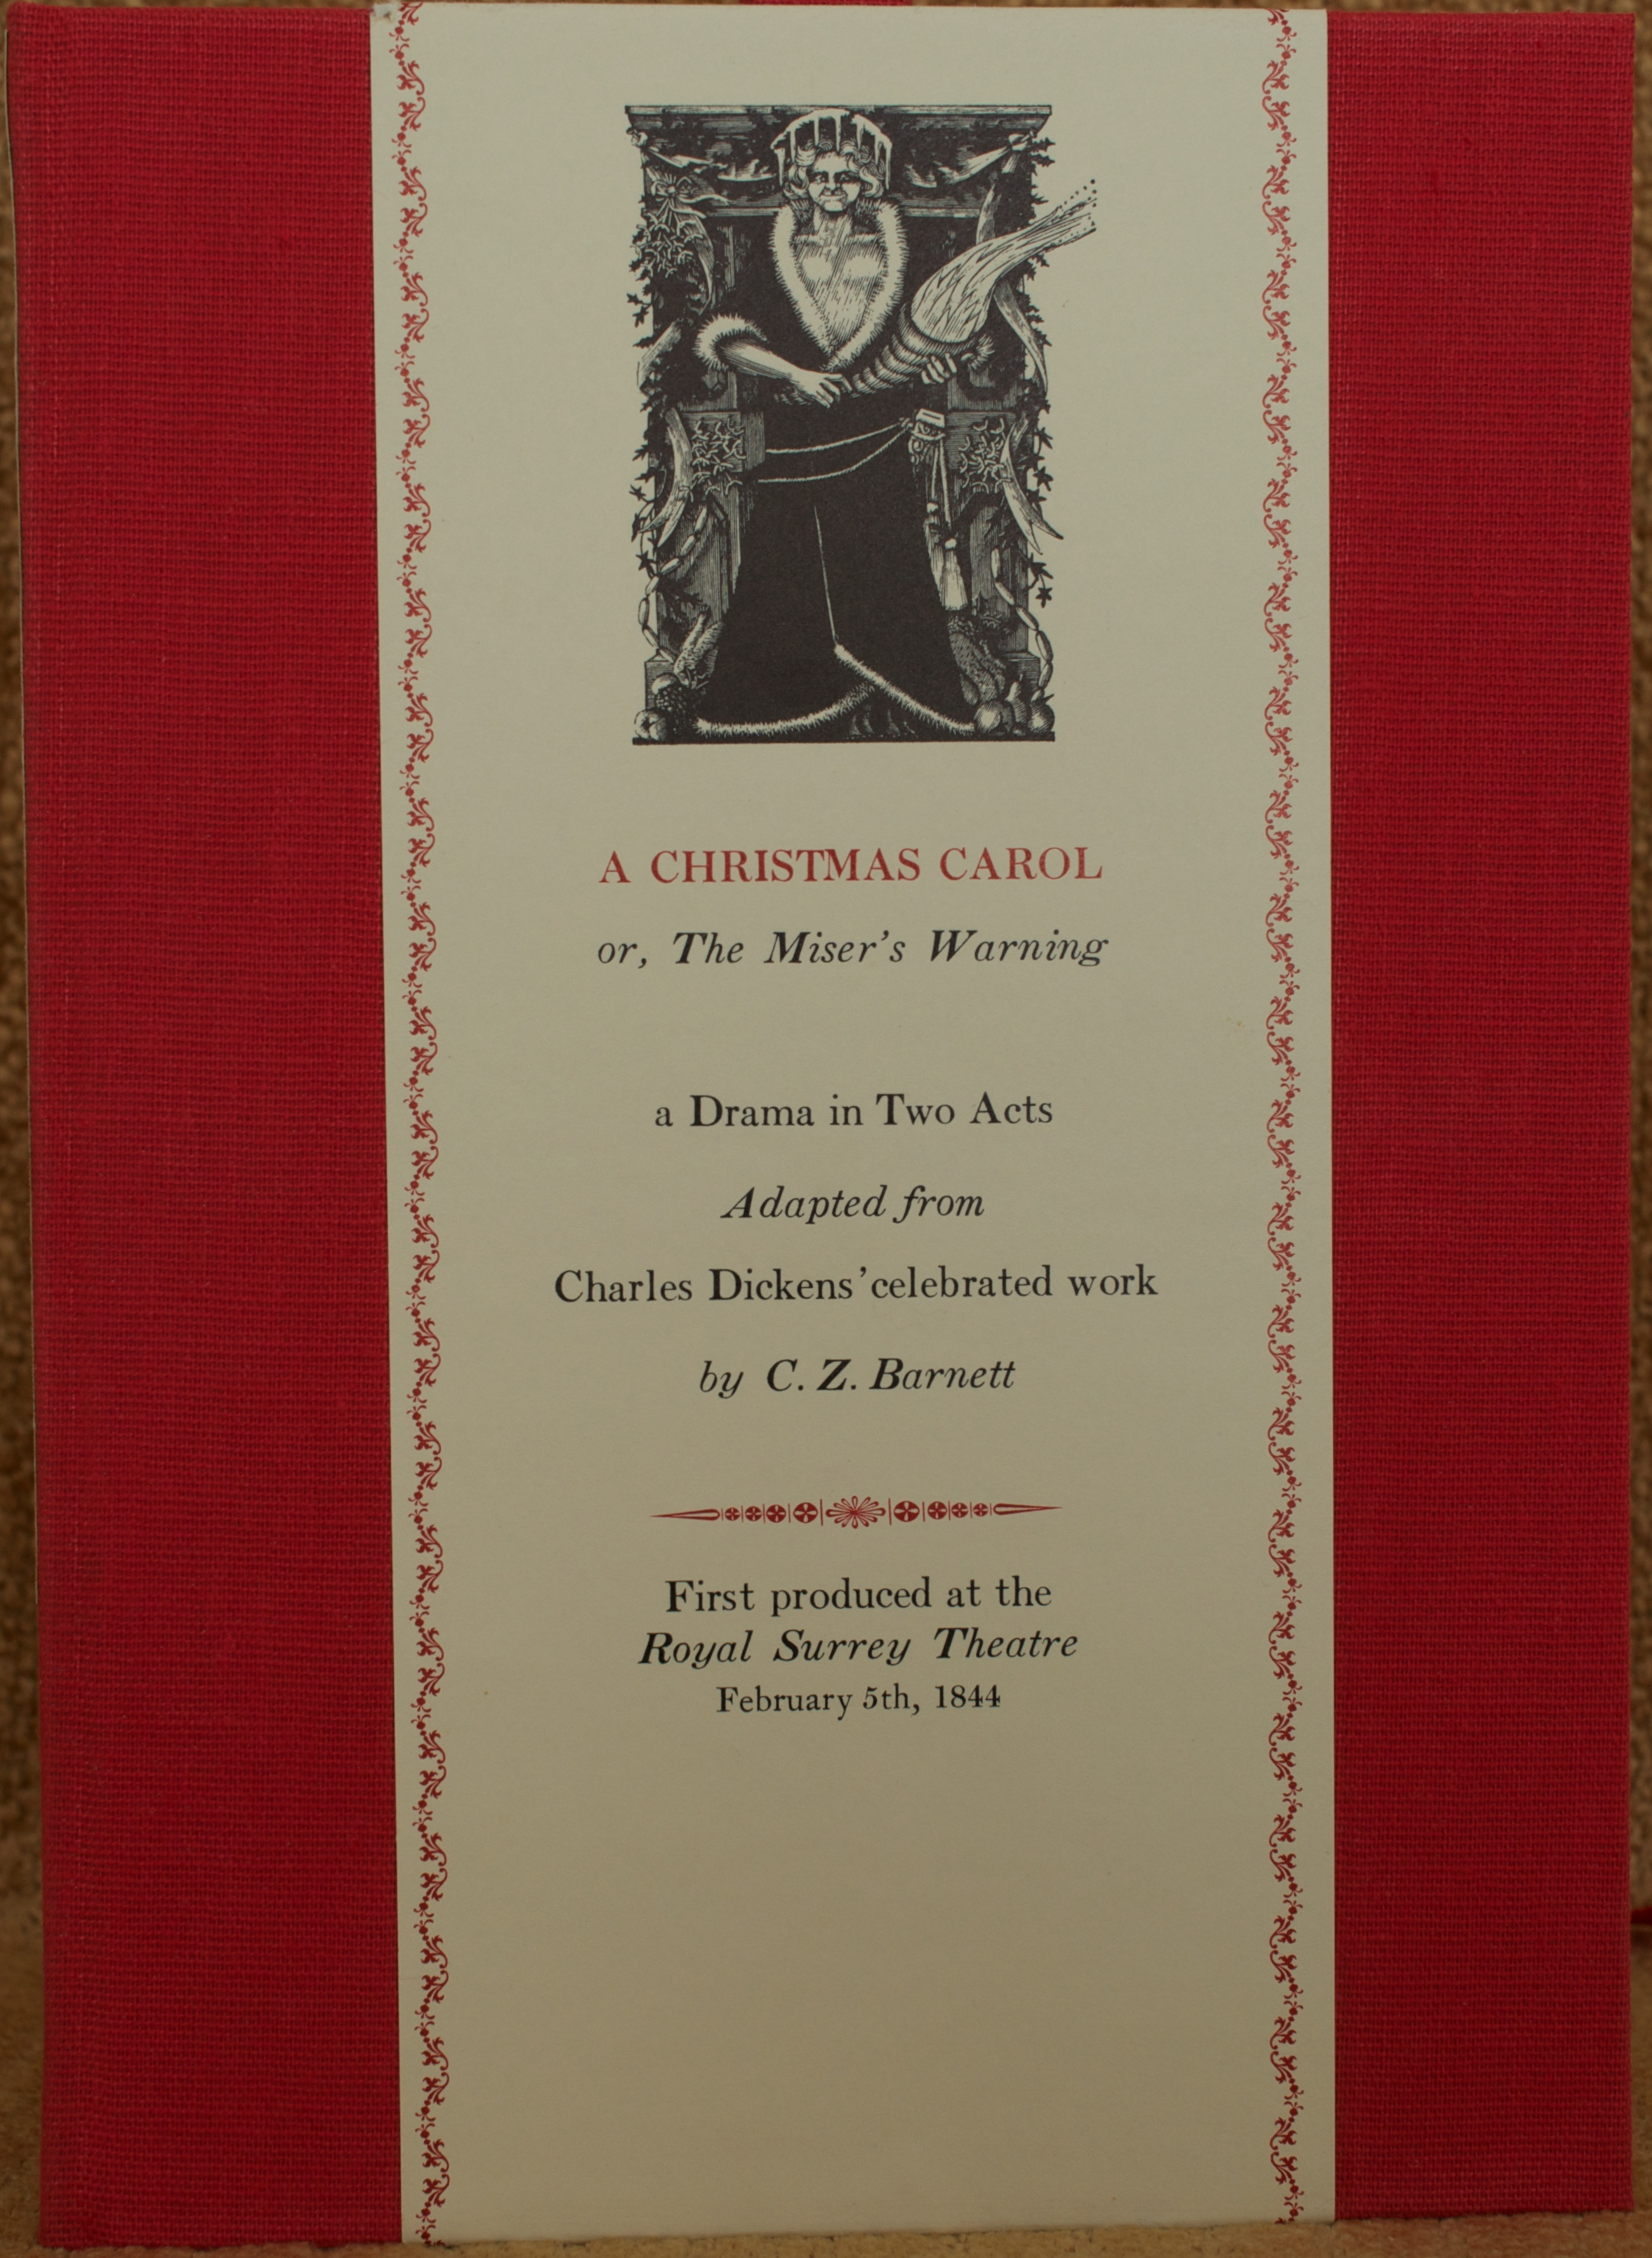 misers warning cover - When Was A Christmas Carol Published